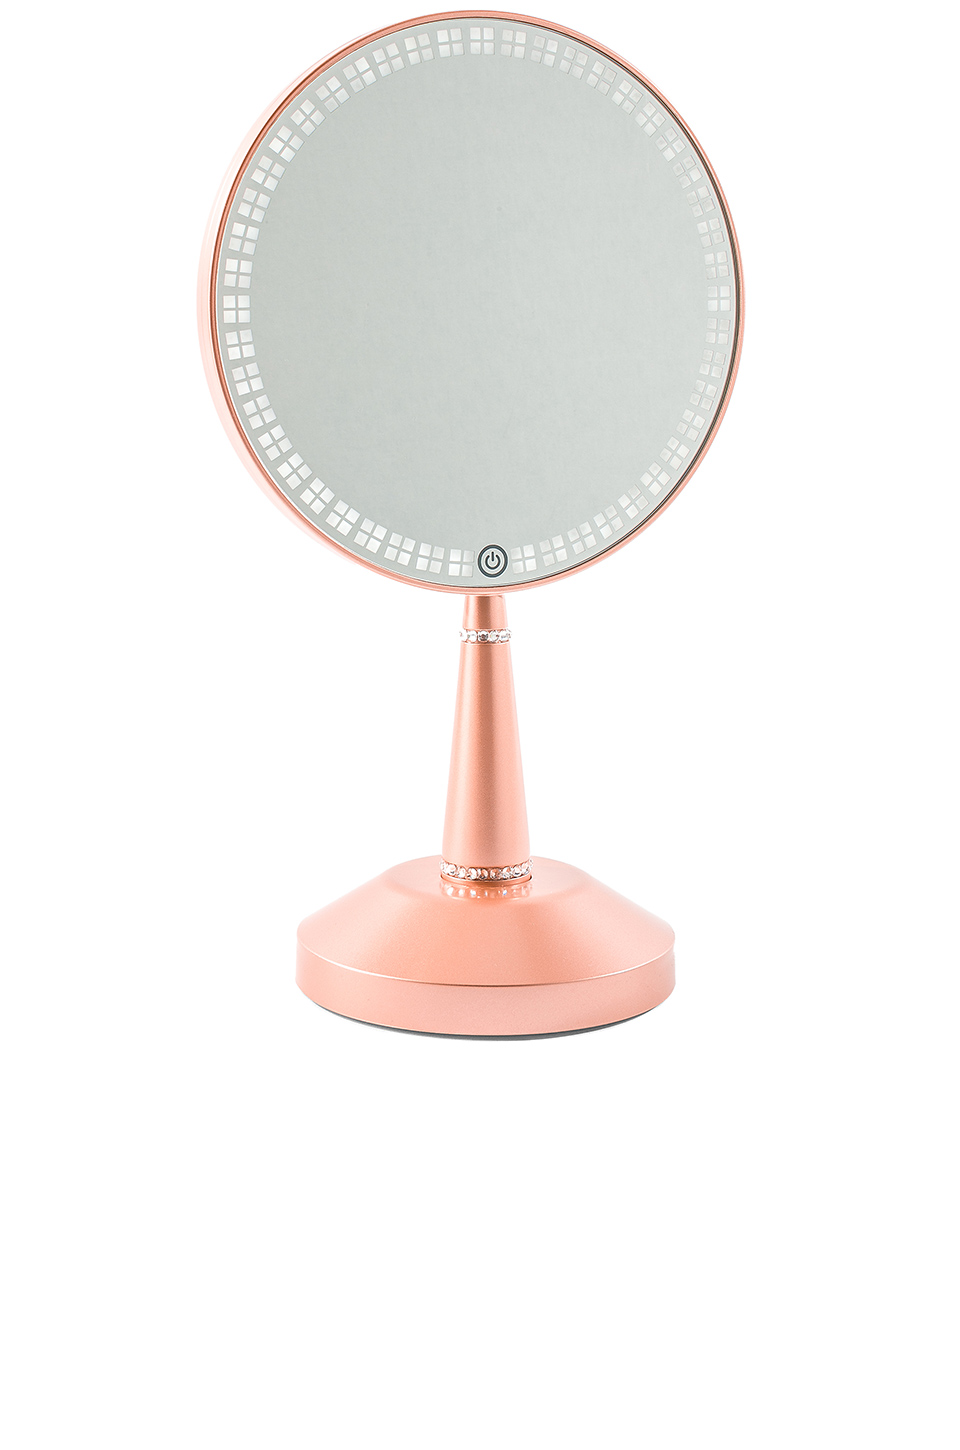 Impressions Vanity Bijou LED Hand Mirror with Charging Stand in Rose Gold